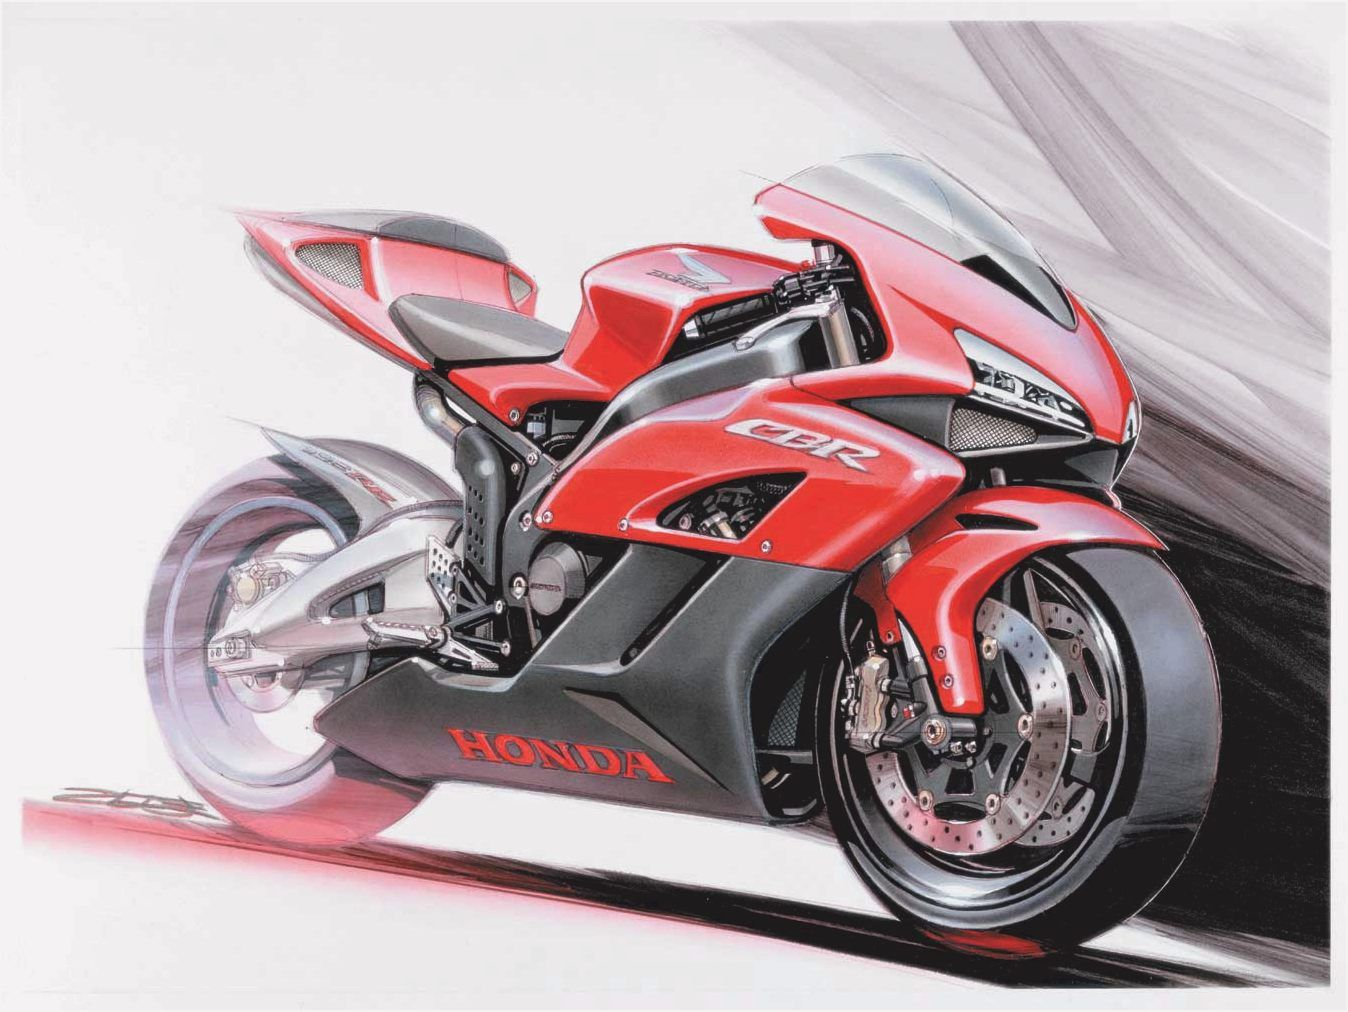 Honda cbr 2014 sports super sports bike photo - Hd Wallpaper And Background Photos Of Honda Cbr For Fans Of Motorcycles Images